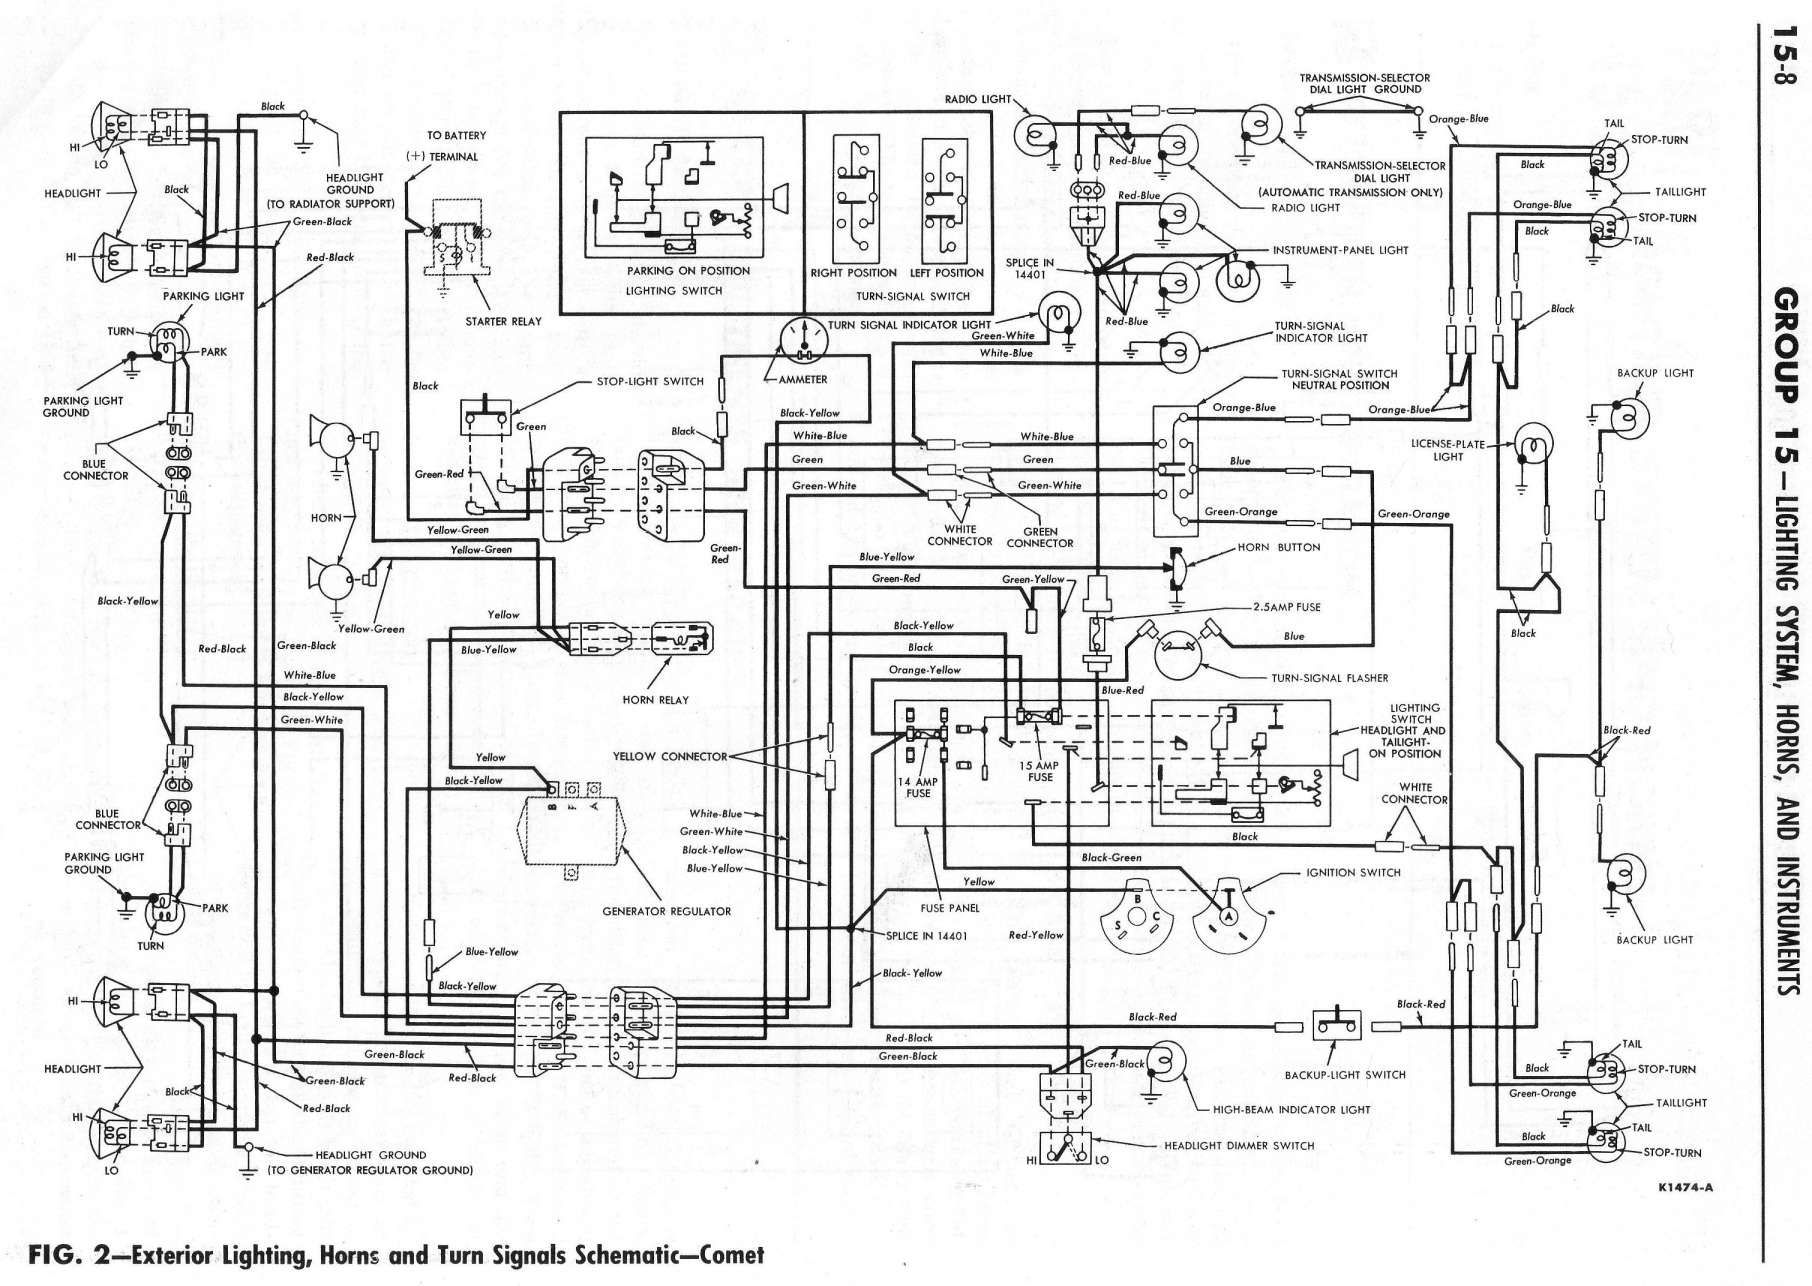 1974 Ford F100 Engine Wiring Diagram And F Ford Econoline Wiring Diagram Wiring Diagrams Curso De Mecanica Automotriz Ford Falcon Mecanica Automotriz